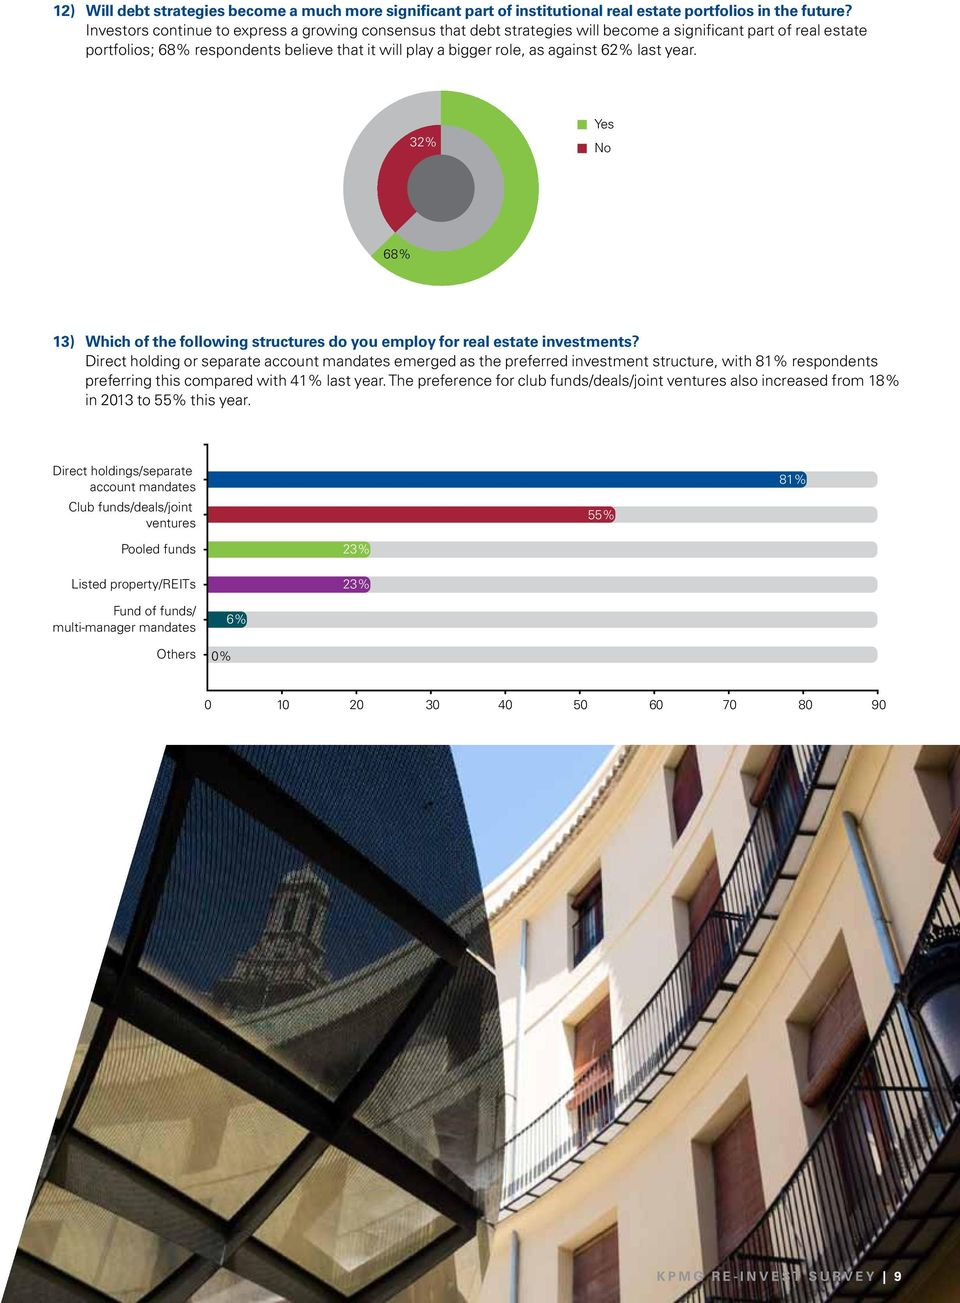 62% last year. 32% Yes No 68% 13) Which of the following structures do you employ for real estate investments?